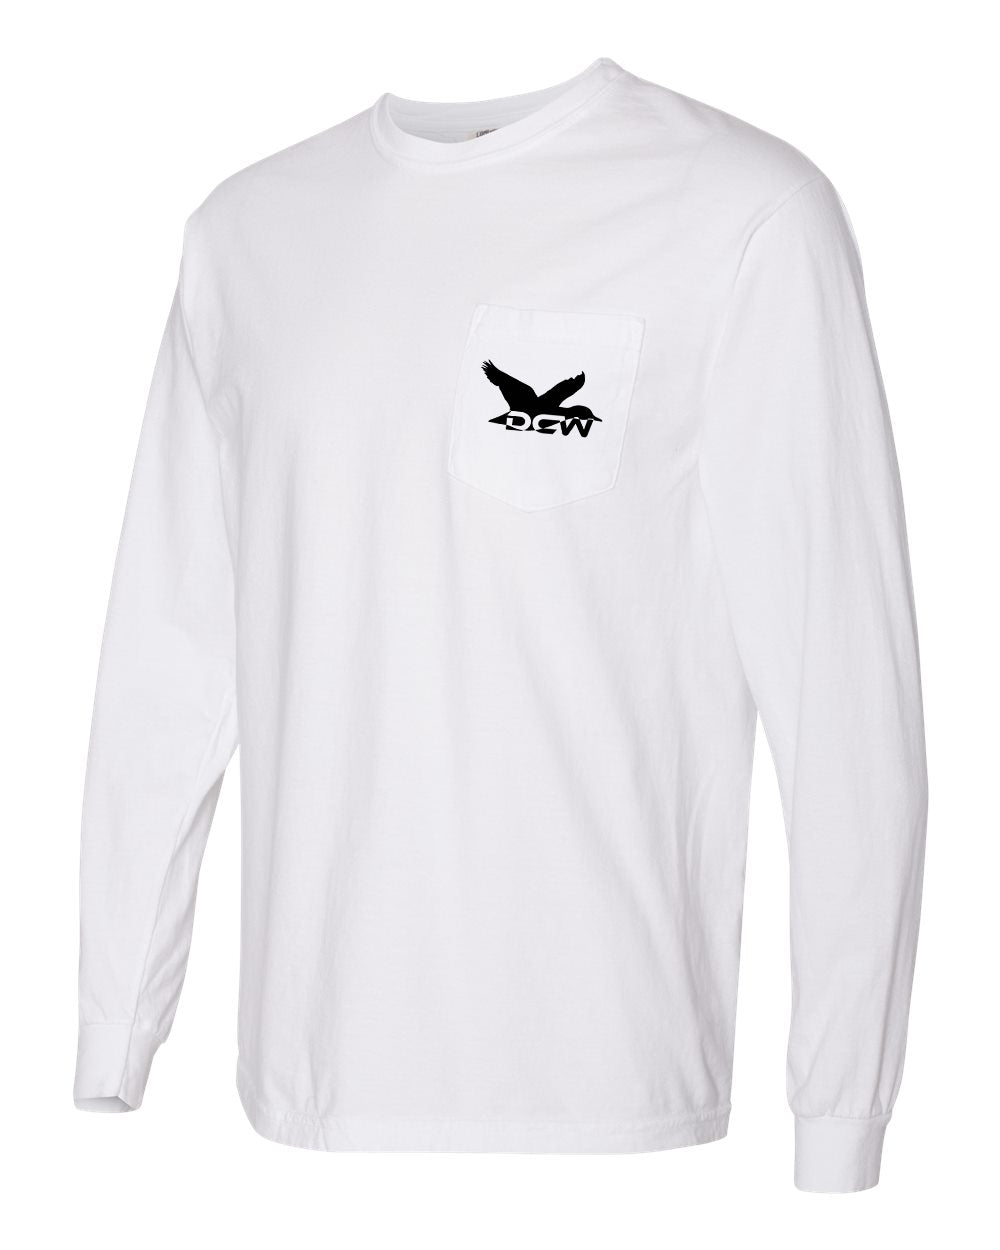 LS Comfort Colors Pocket Tee - DCW Duck Stamp